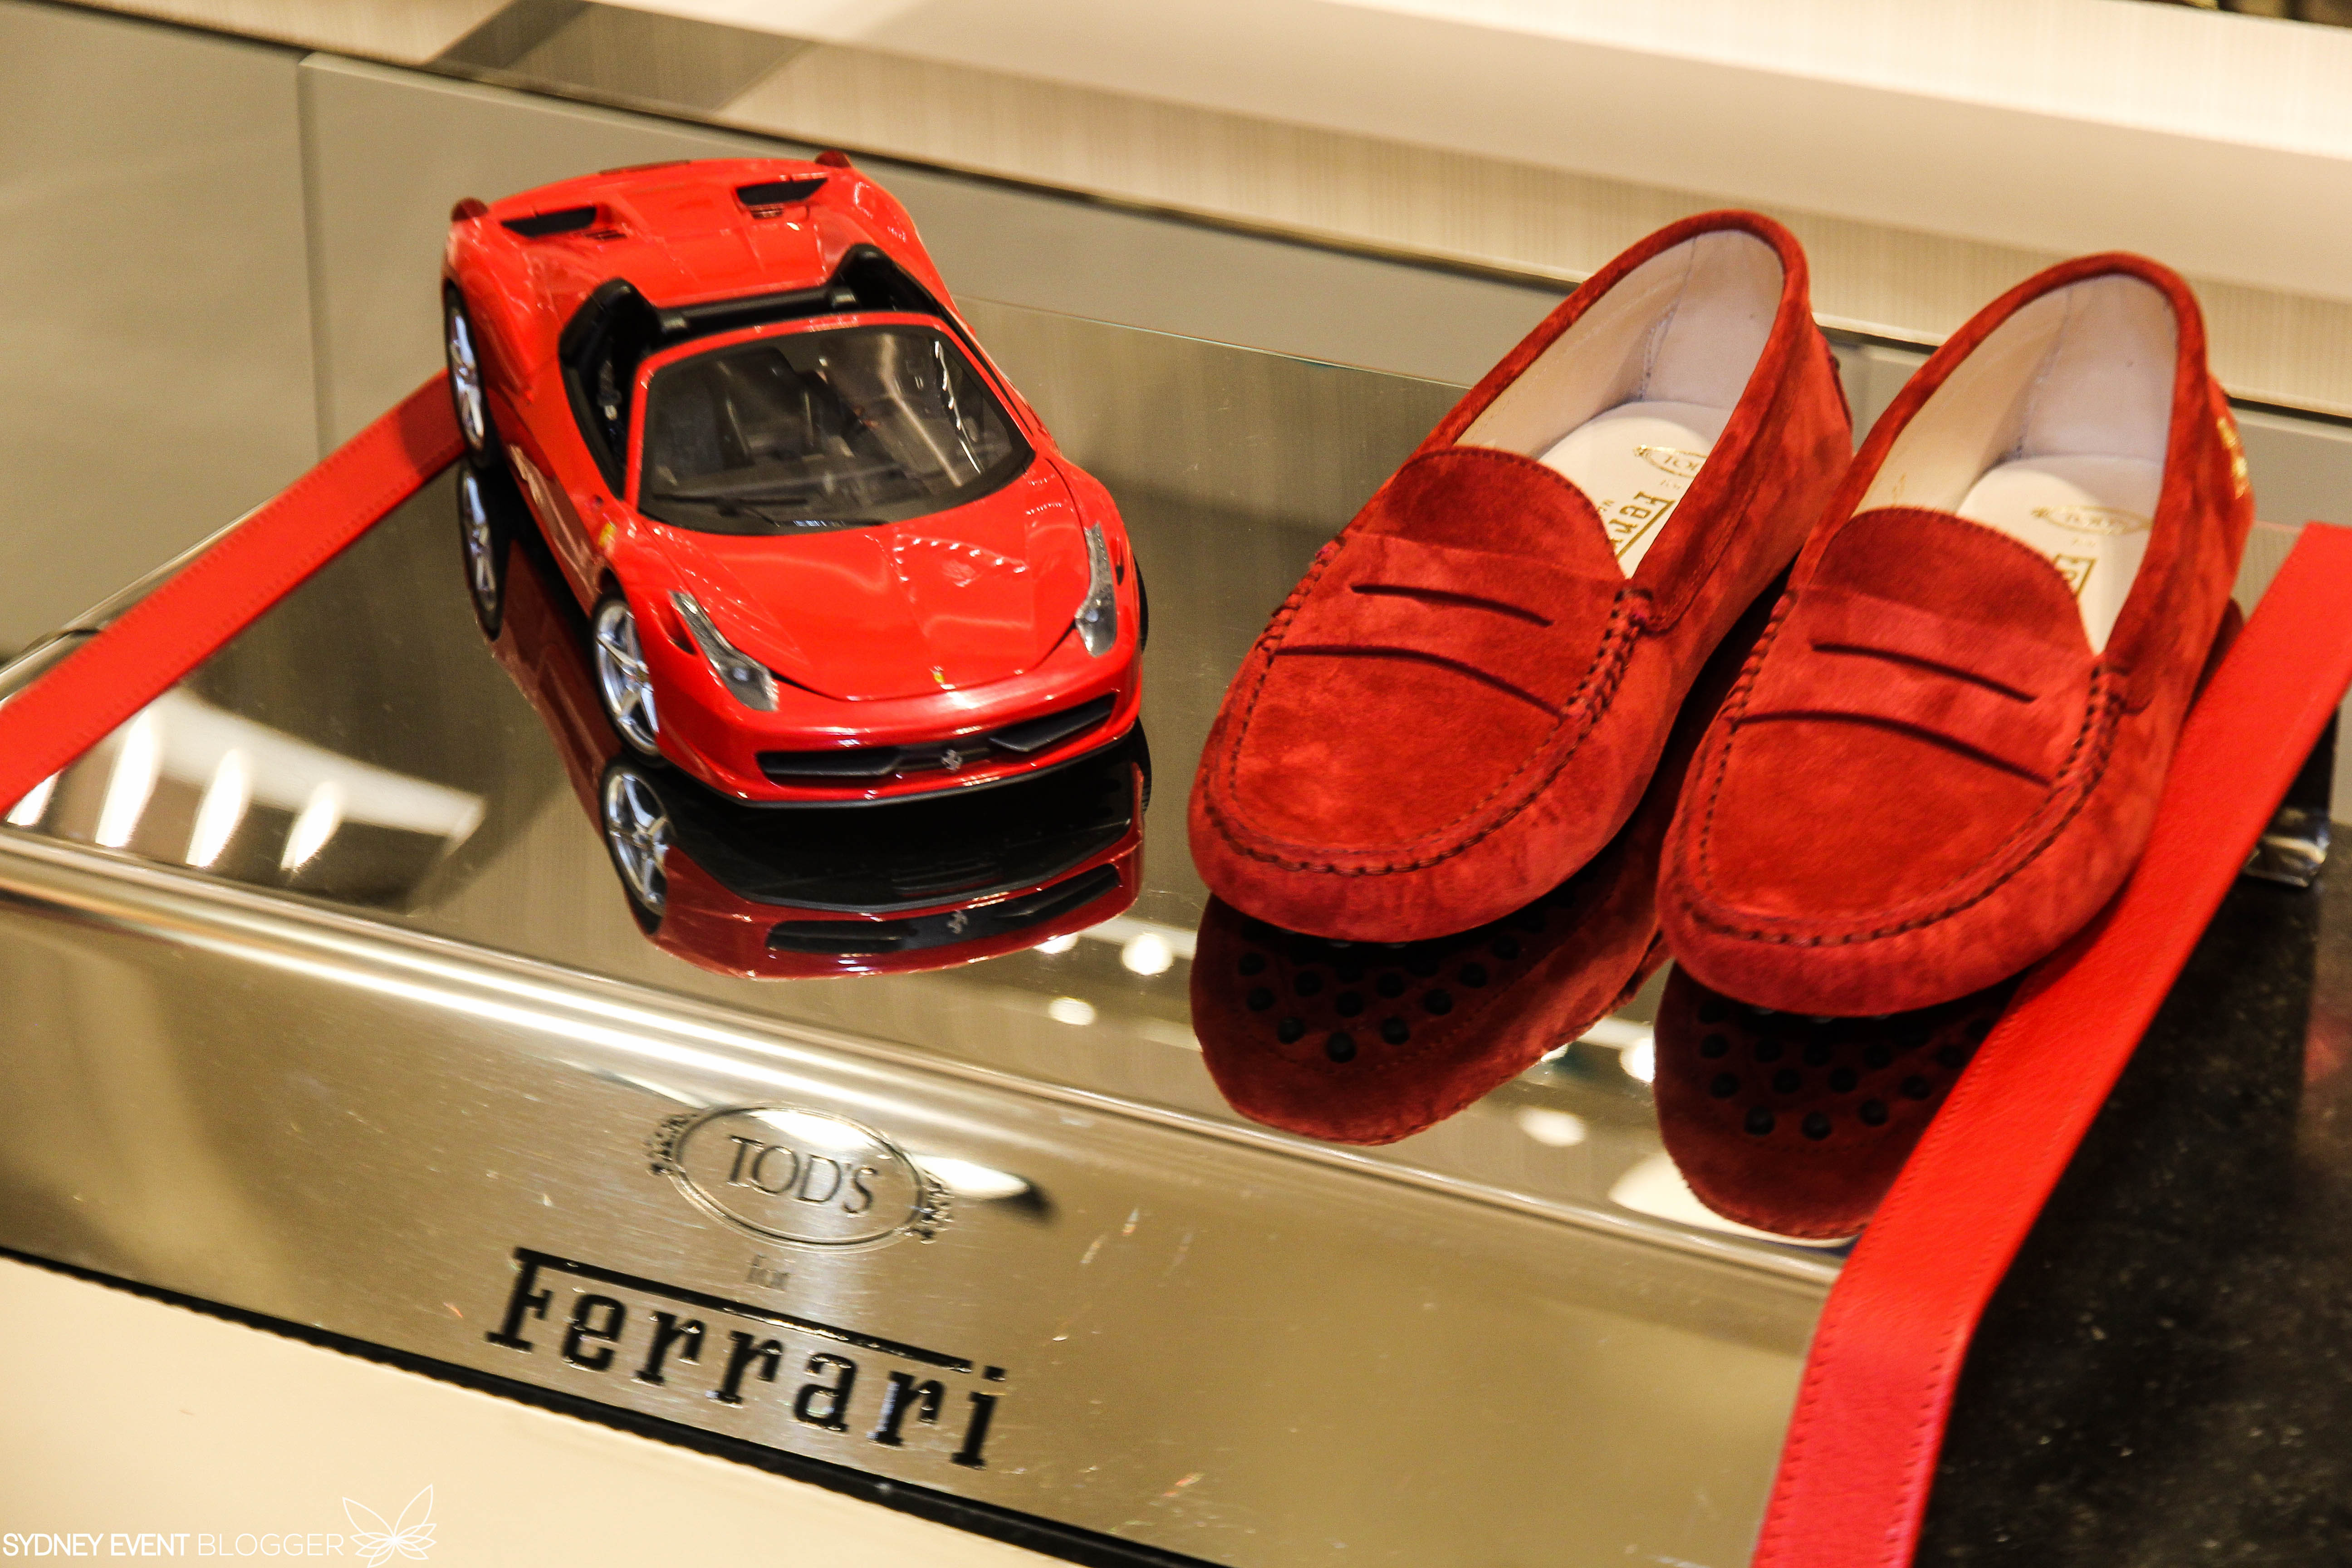 tod women for code style raffties tods womens ferrari shoes large s detail